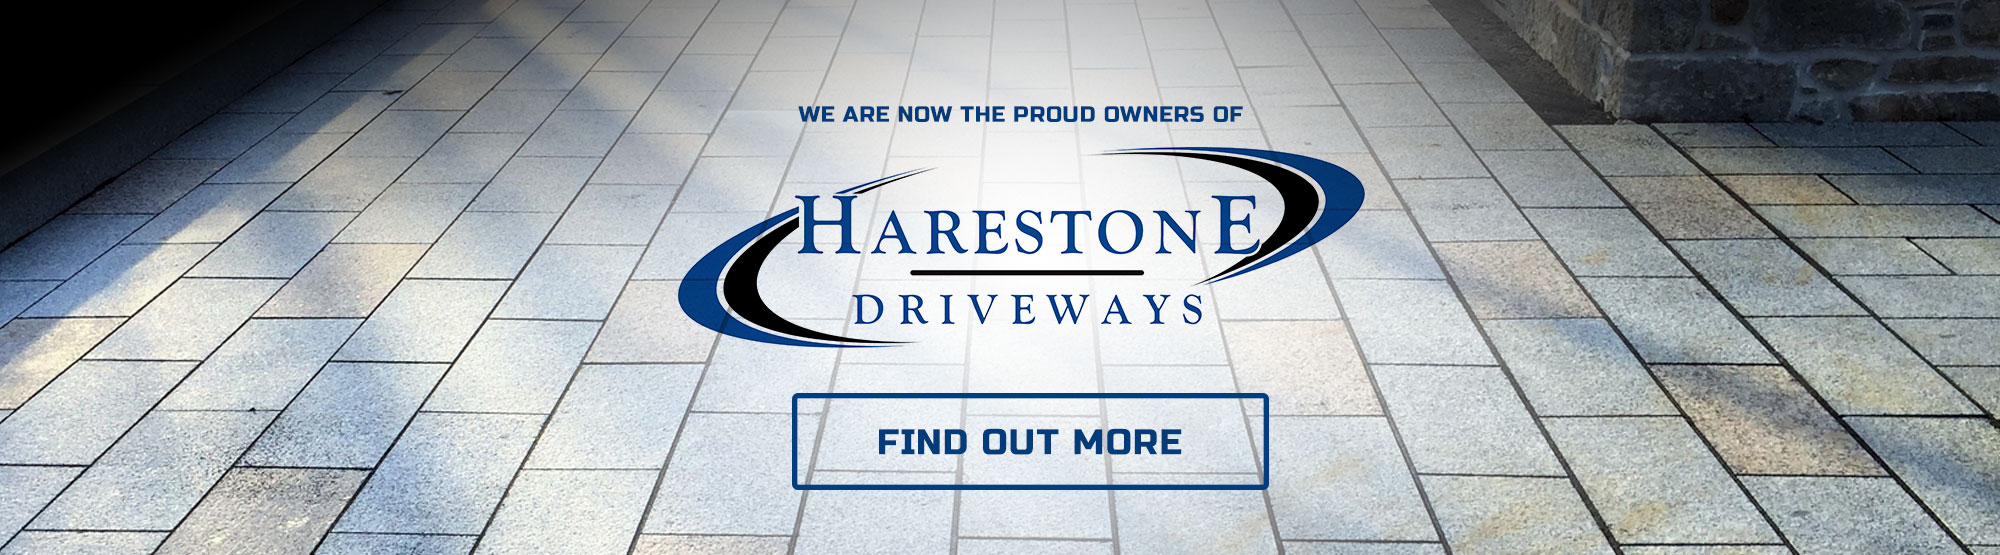 Find Out More About Harestone Driveways